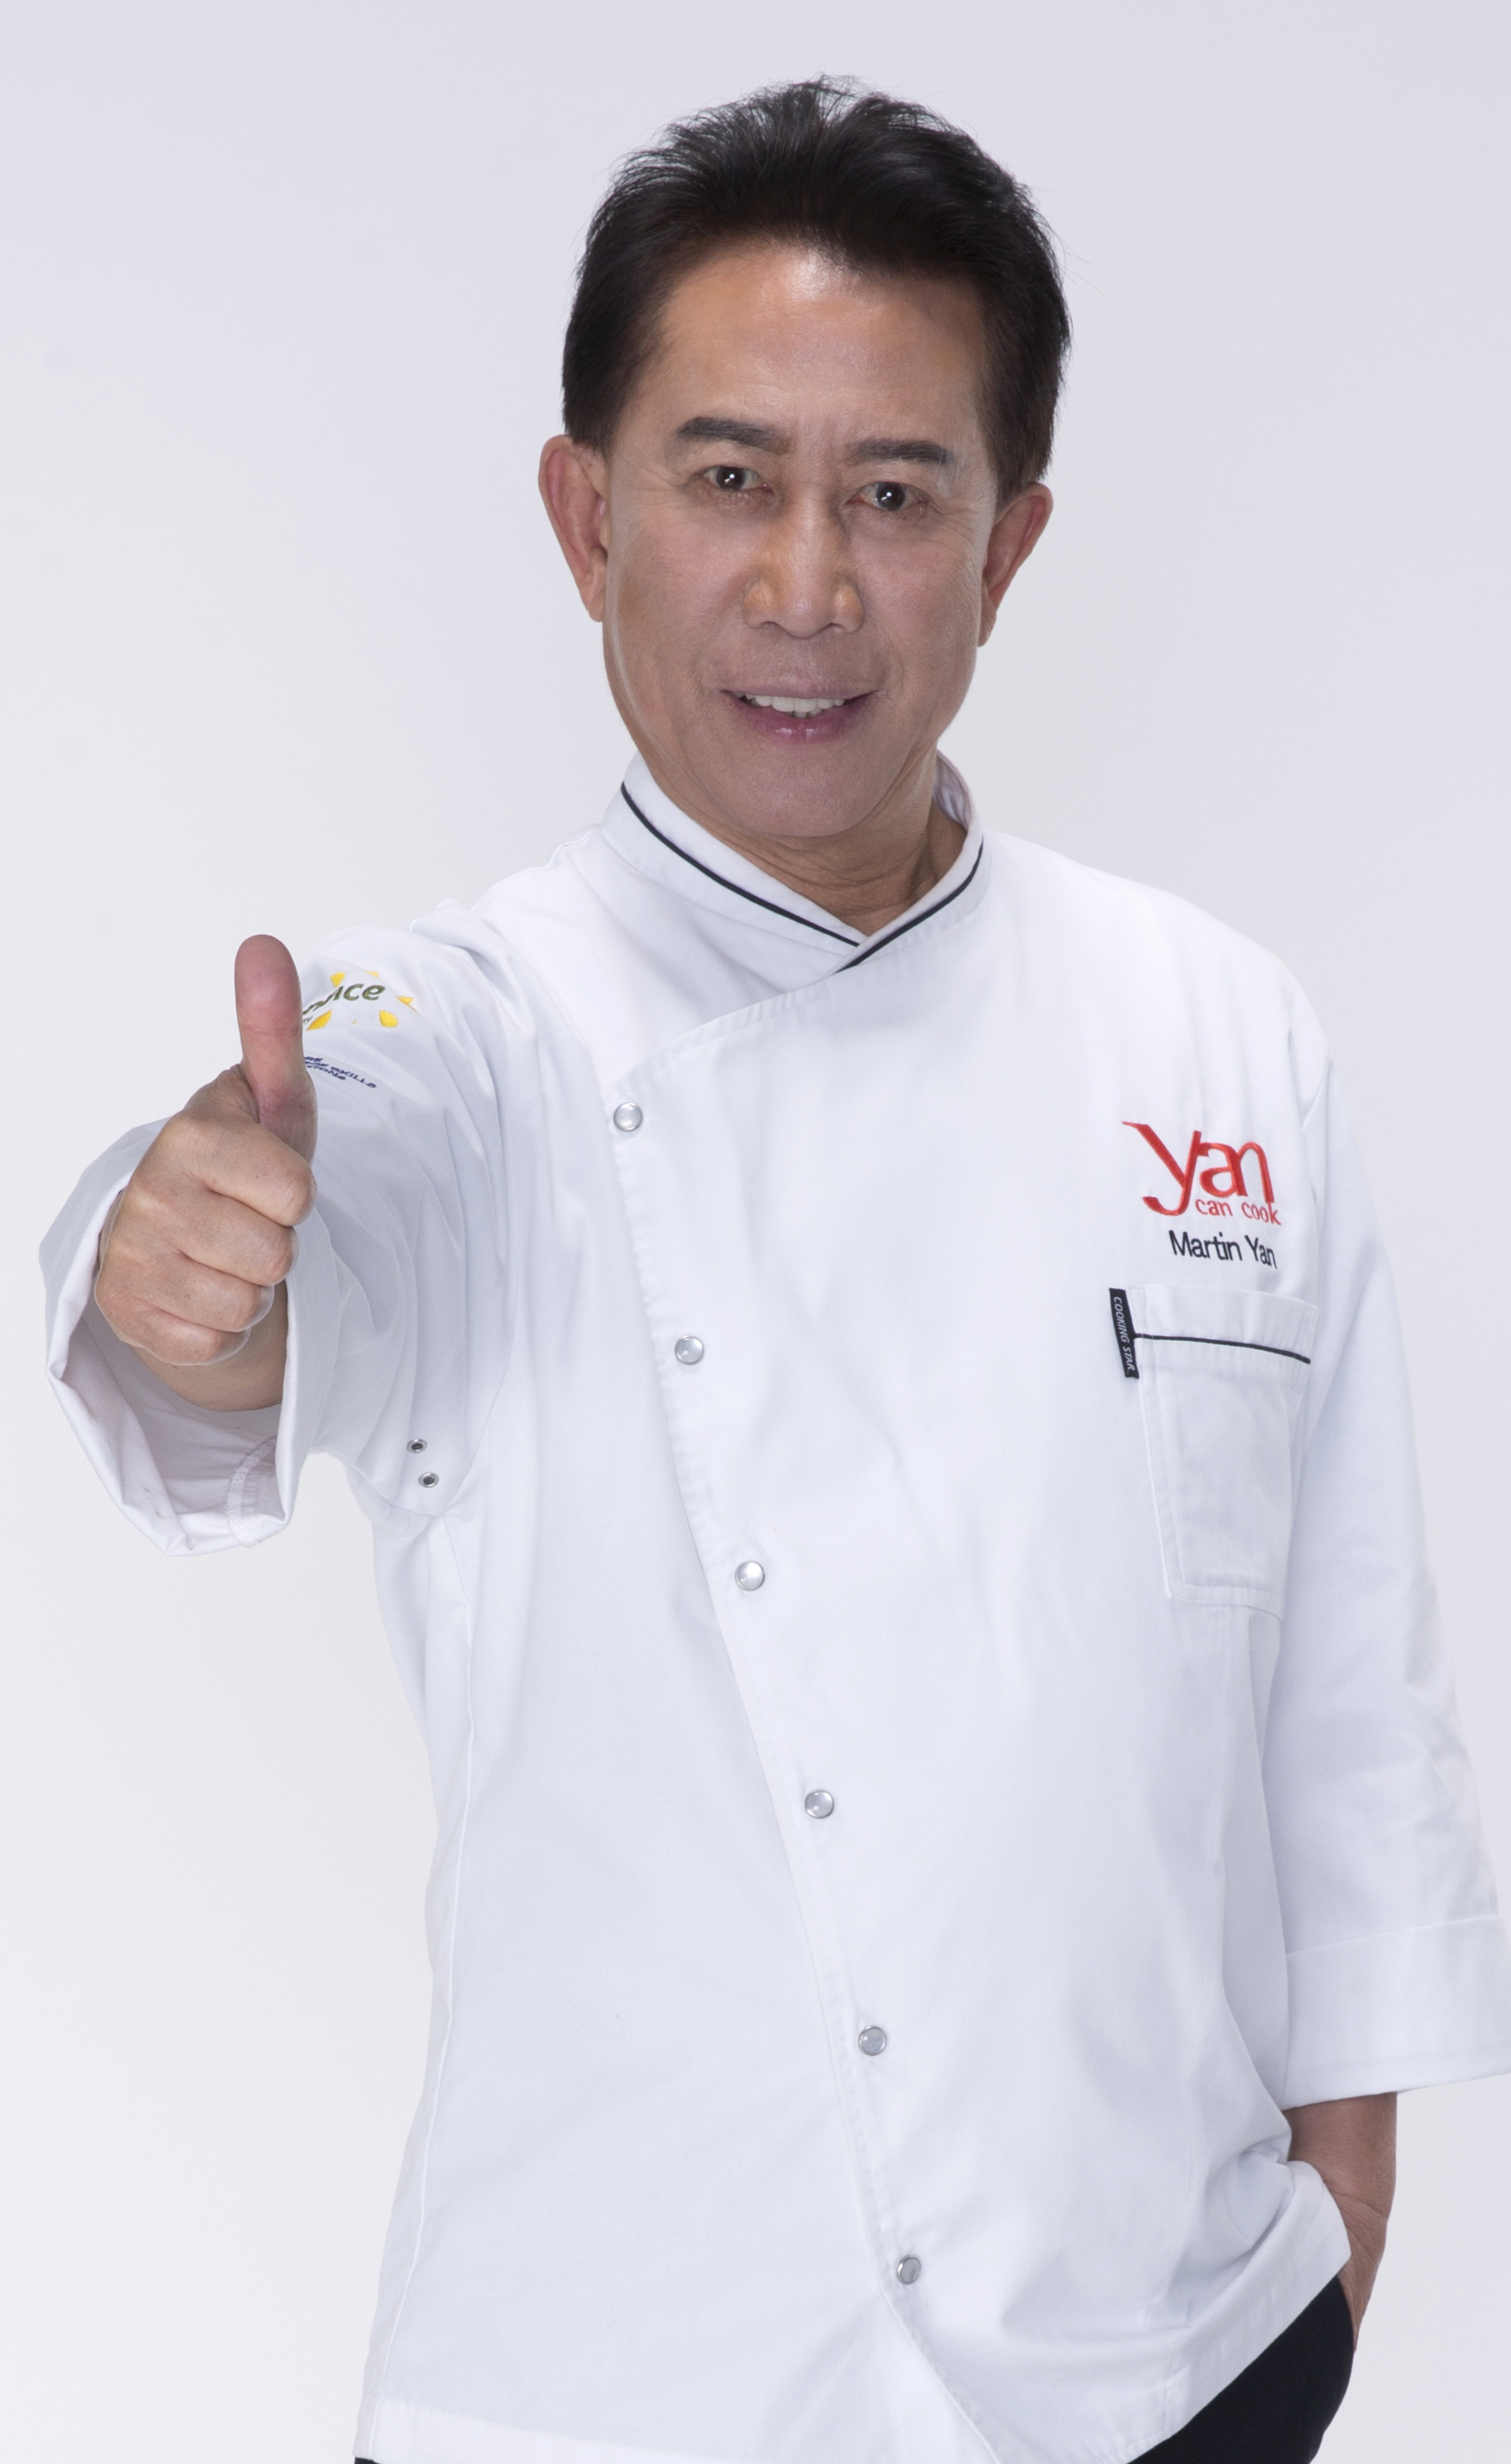 Martin Yan - Full Interview